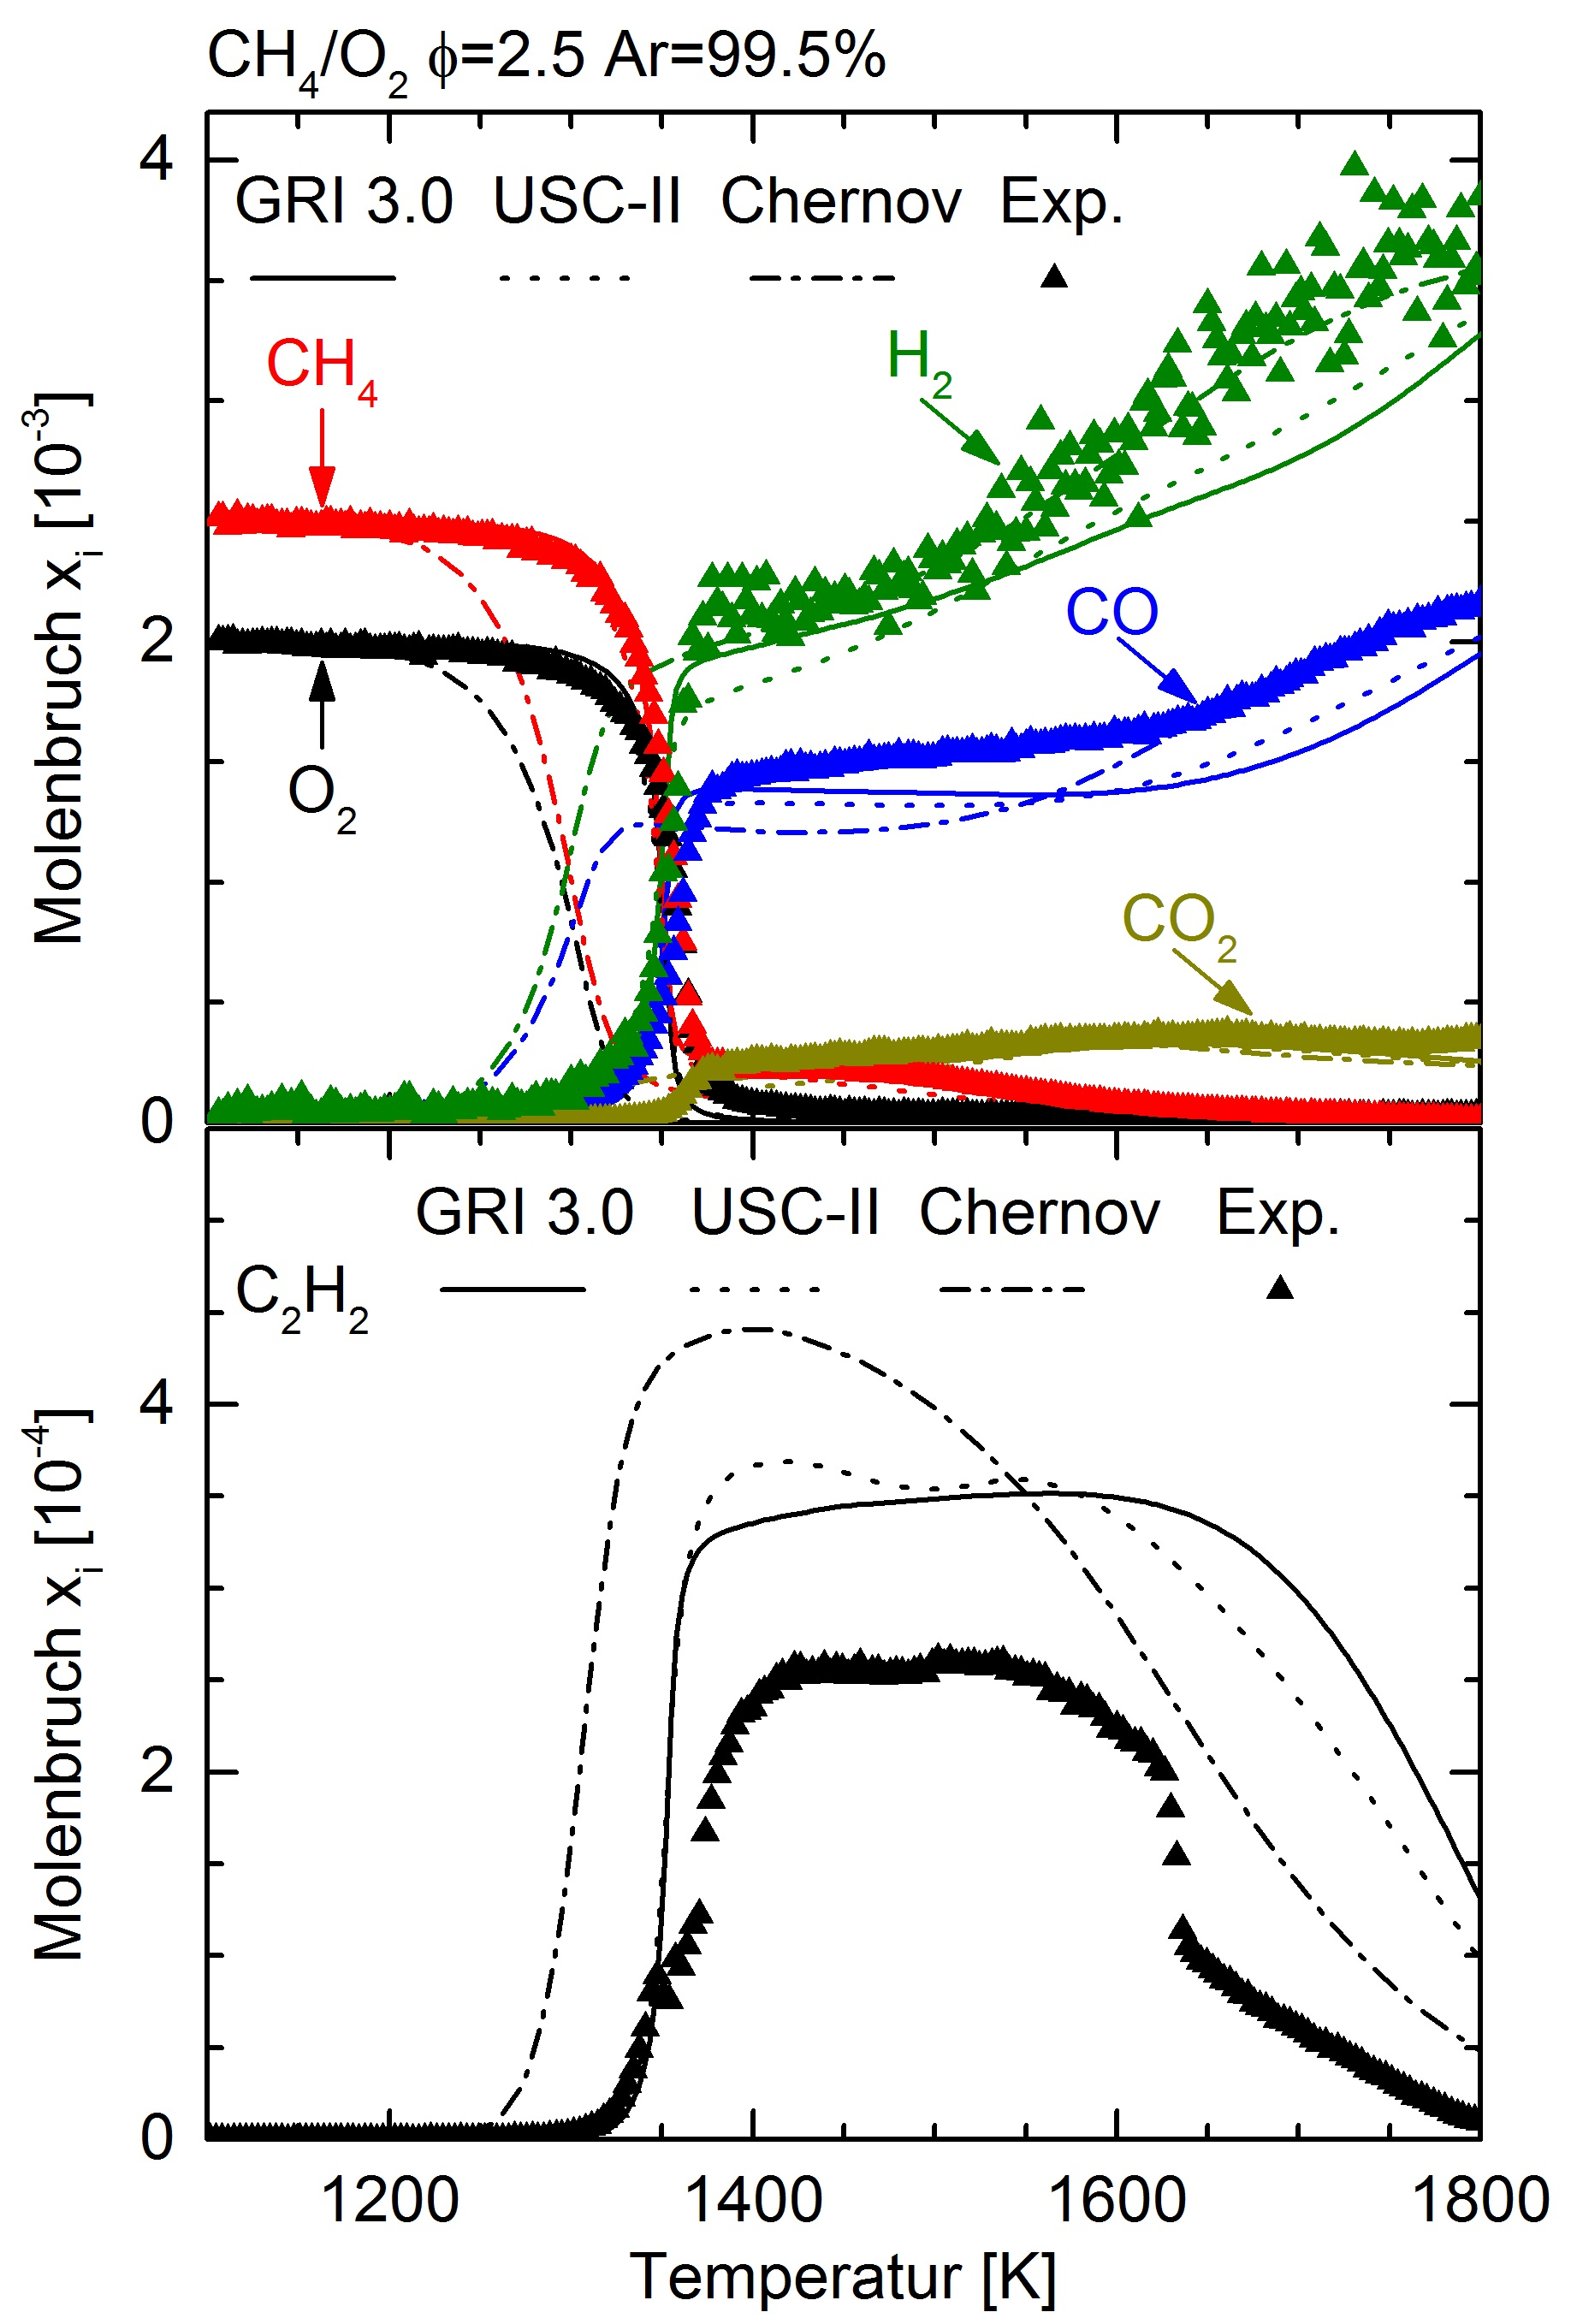 Dlr institute of combustion technology gas phase reactions experimental dots and simulated lines species profiles for rich methane oxygen conditions as a function of the oven temperature pooptronica